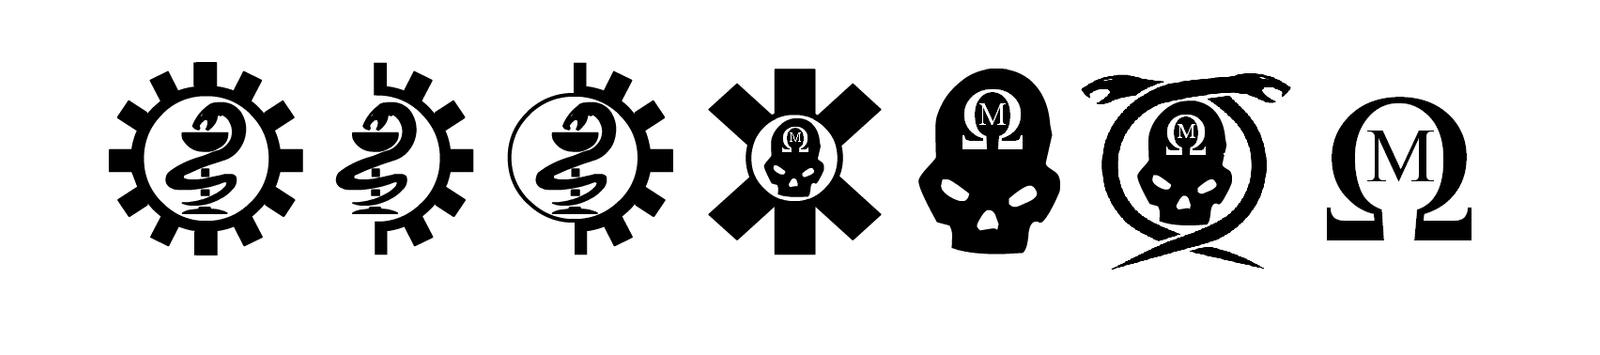 Warhammer 40k Miscellaneous Medical Symbols by Light-Tricks